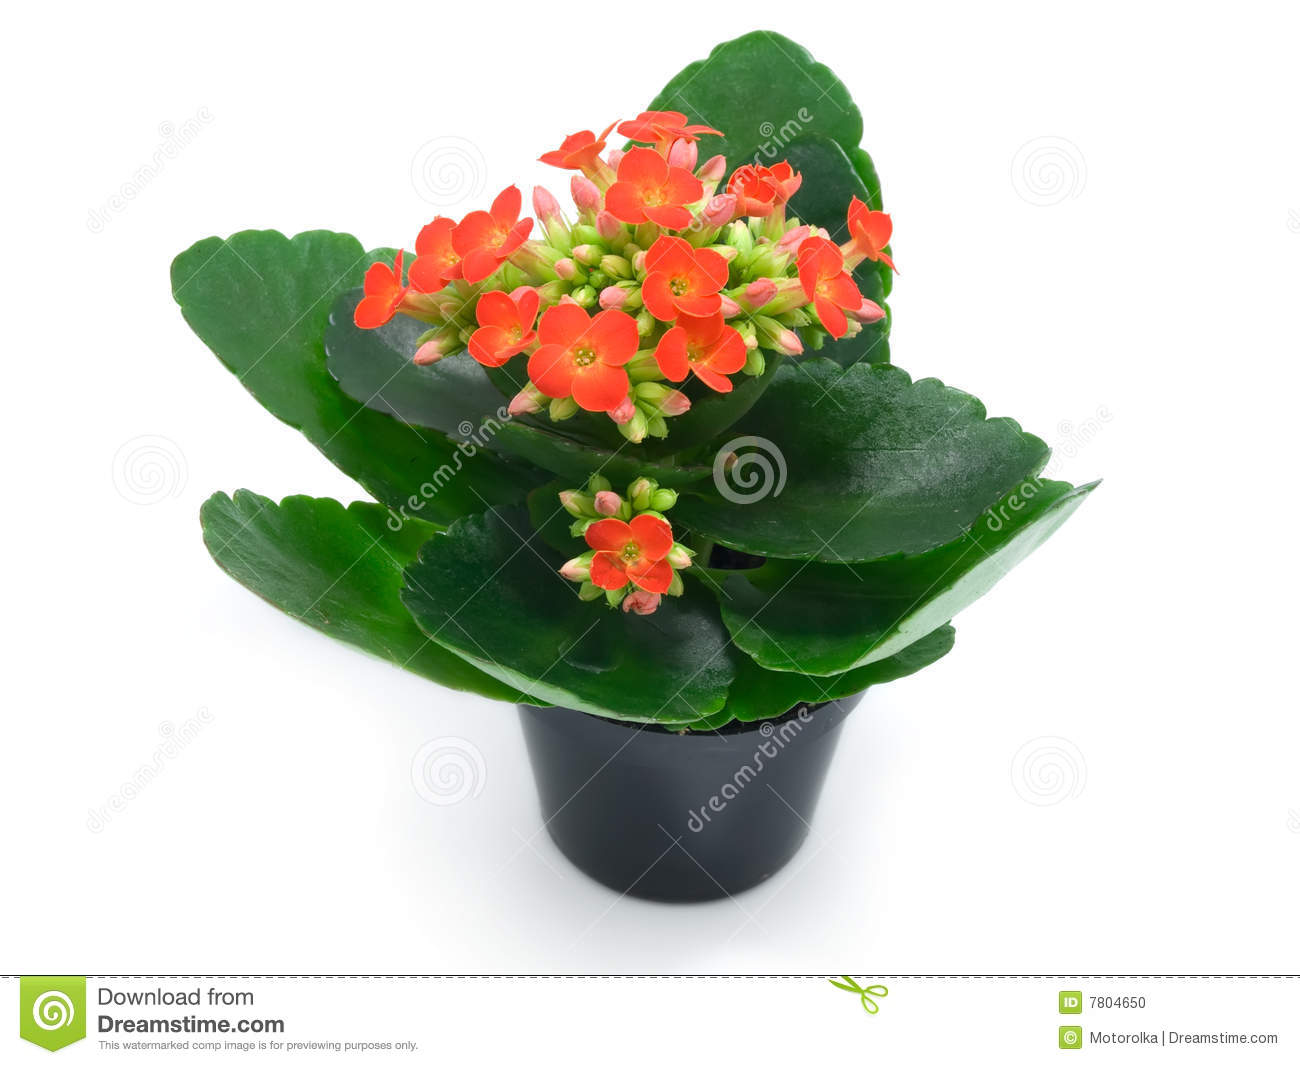 Pictures Of Flowering House Plants Green Houseplants With Red Flowers Stock Photo Image